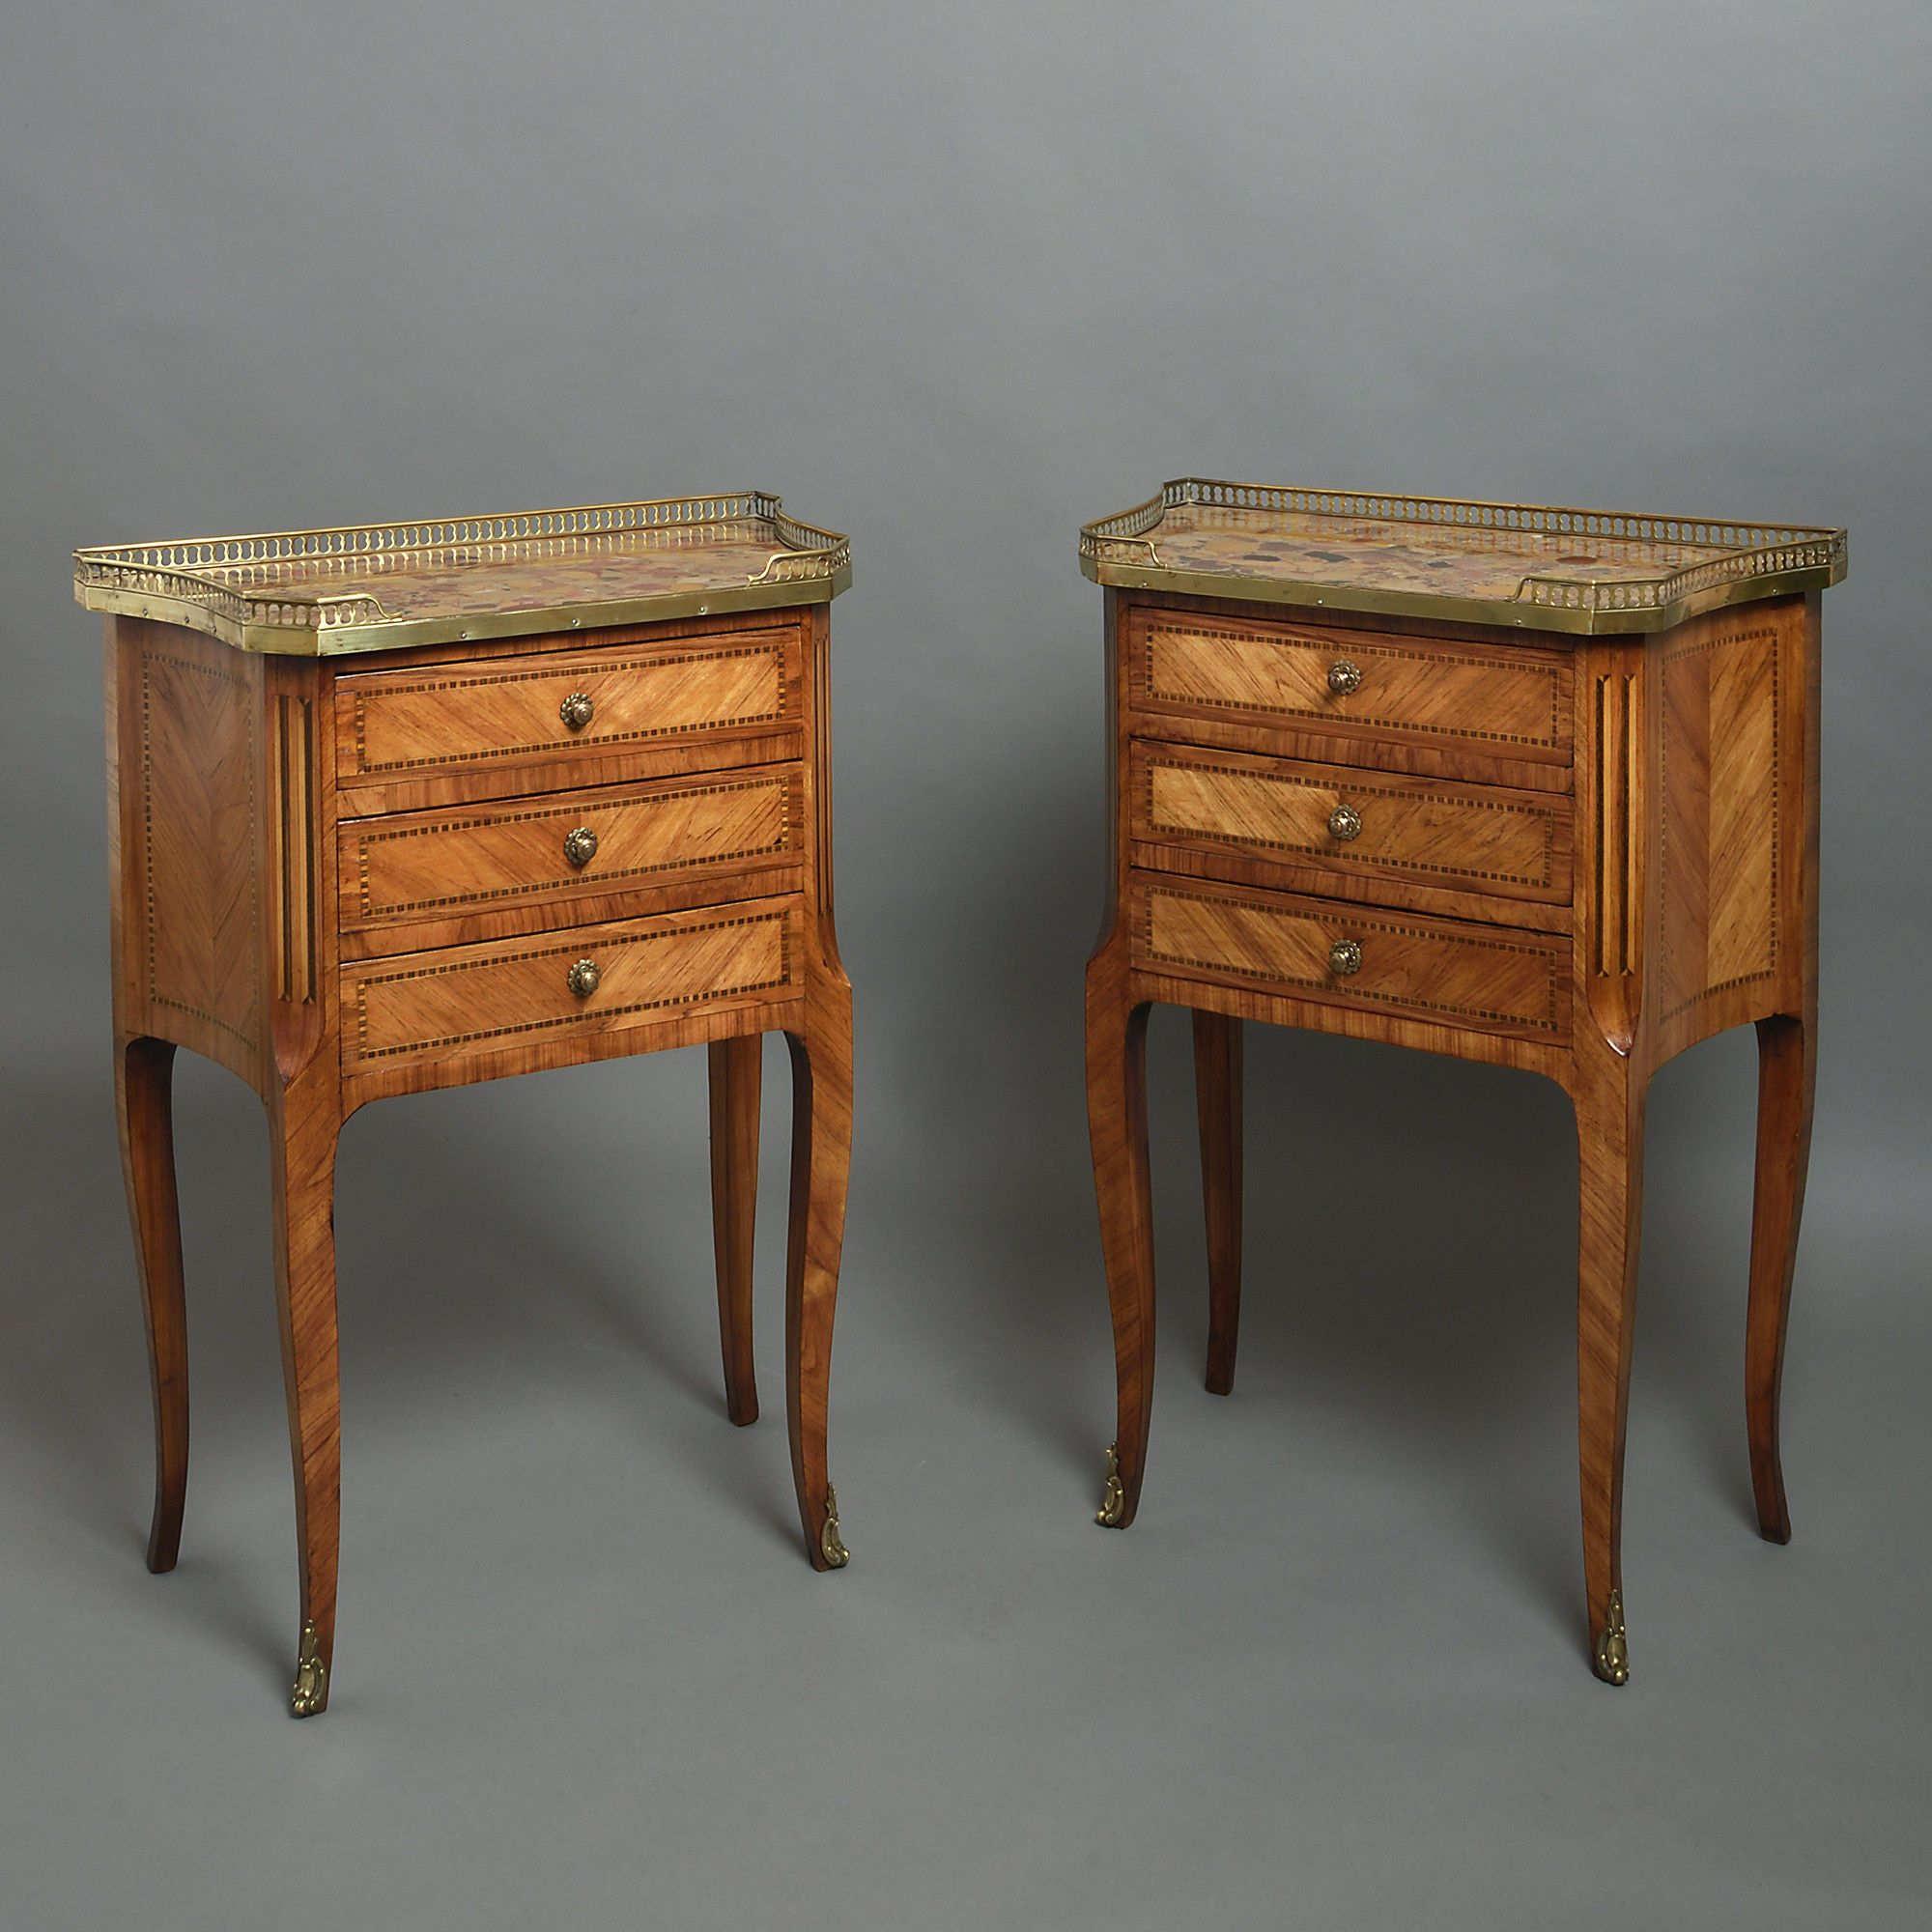 19th Century Pair of Louis XVI Style Bedside